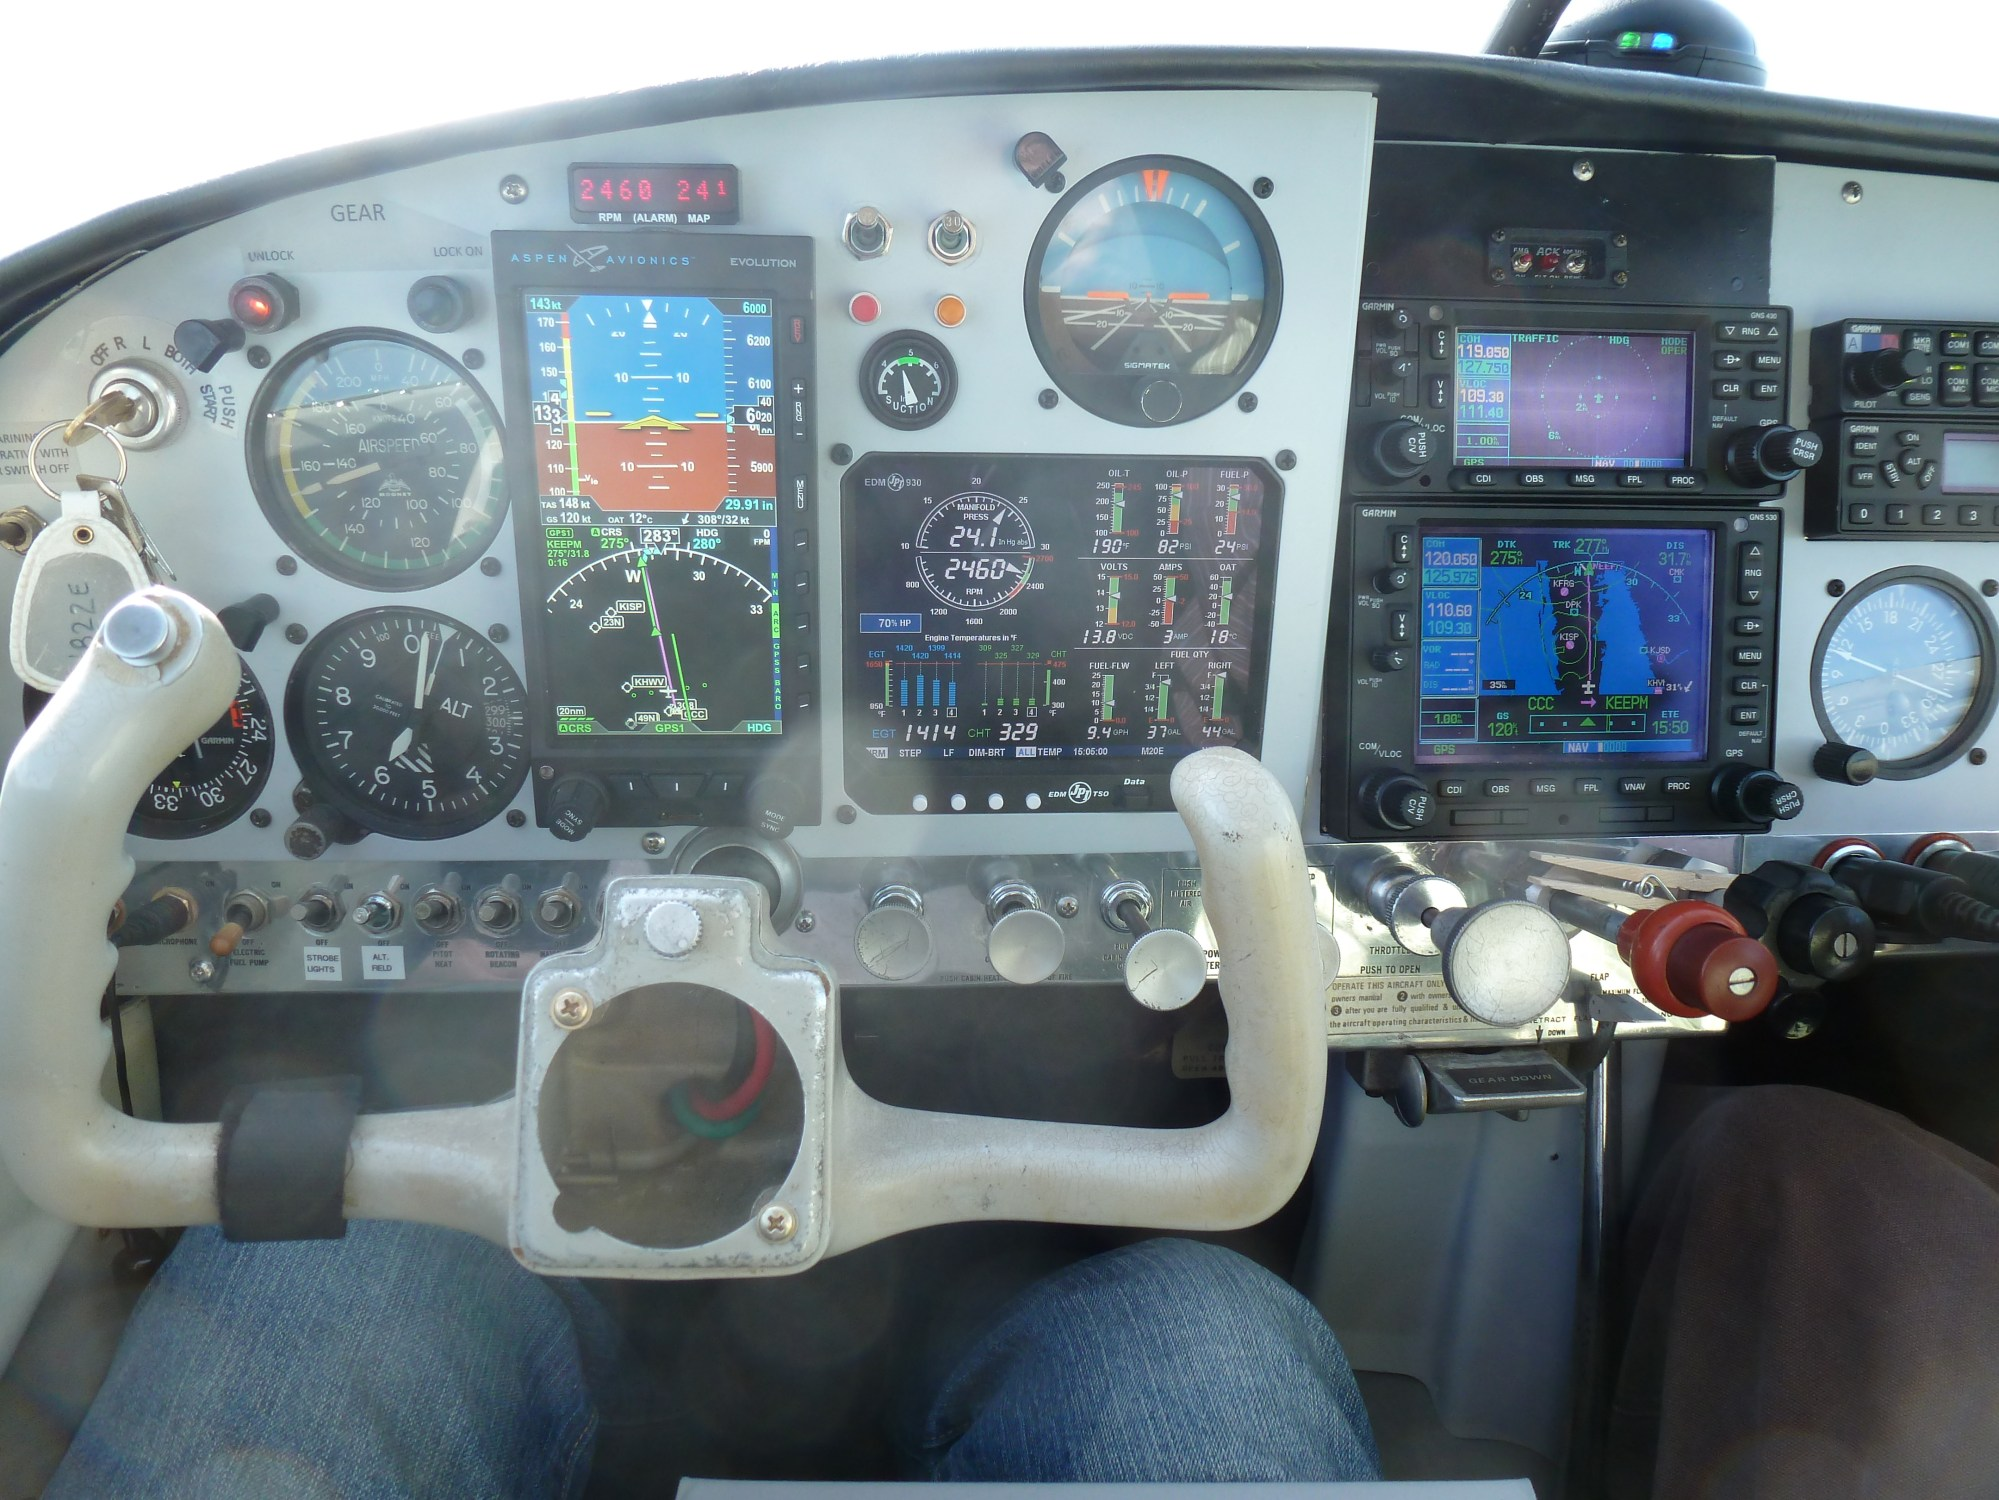 hight resolution of justincarter s content mooneyspace com a community for mooney aircraft owners and enthusiasts